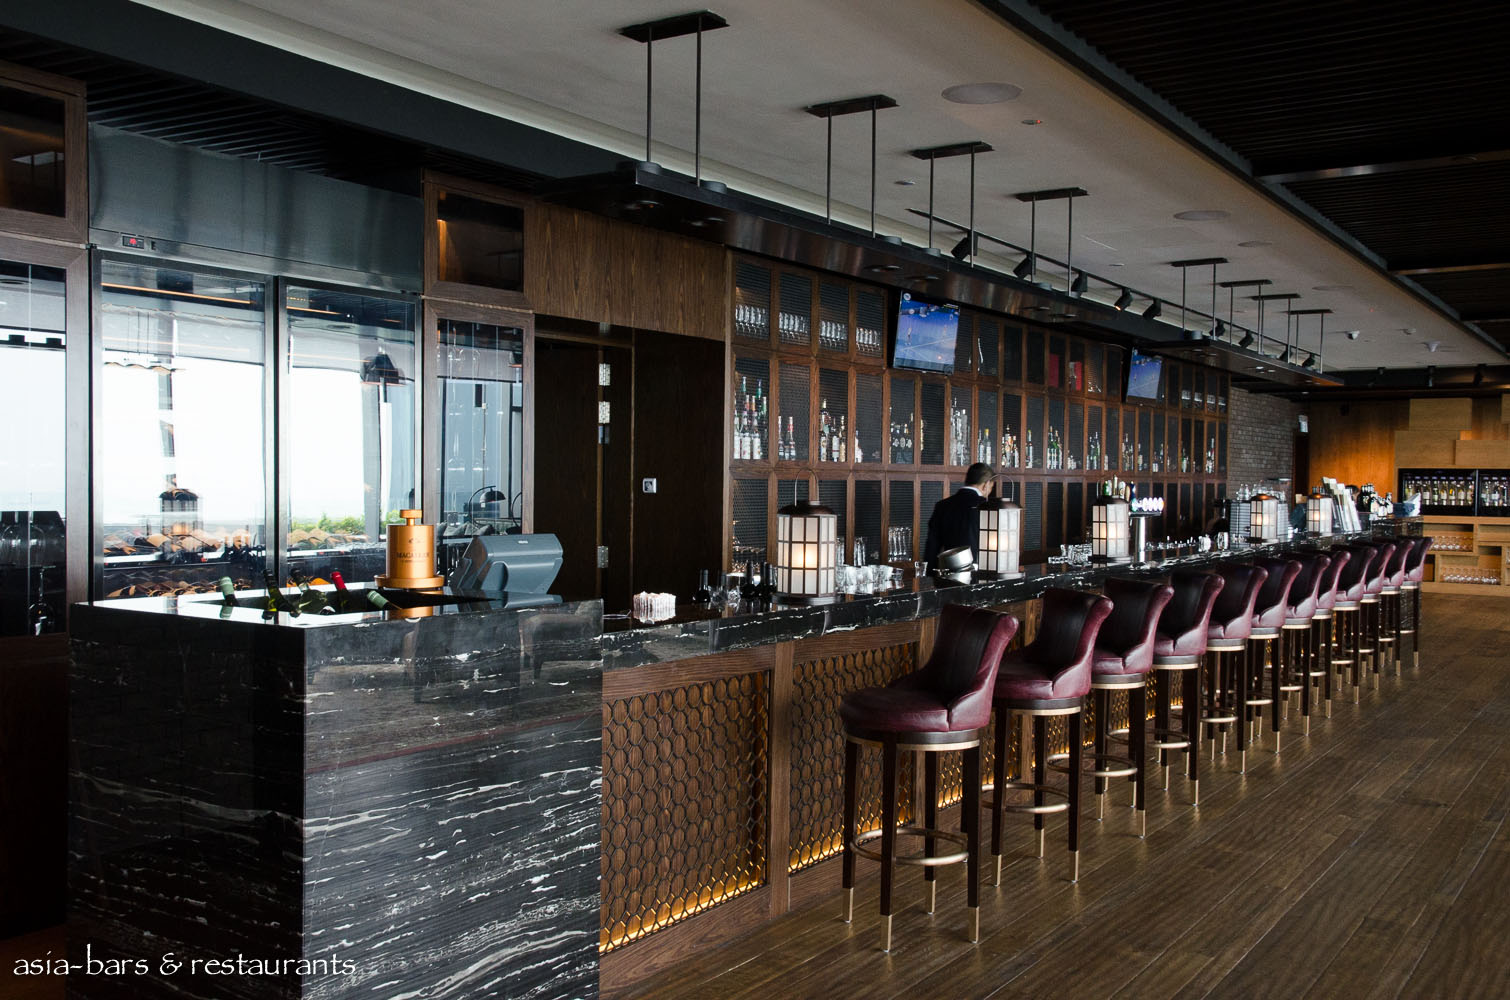 Cook Amp Brew Contemporary Gastro Bar At The Westin Singapore Asia Bars Amp Restaurants